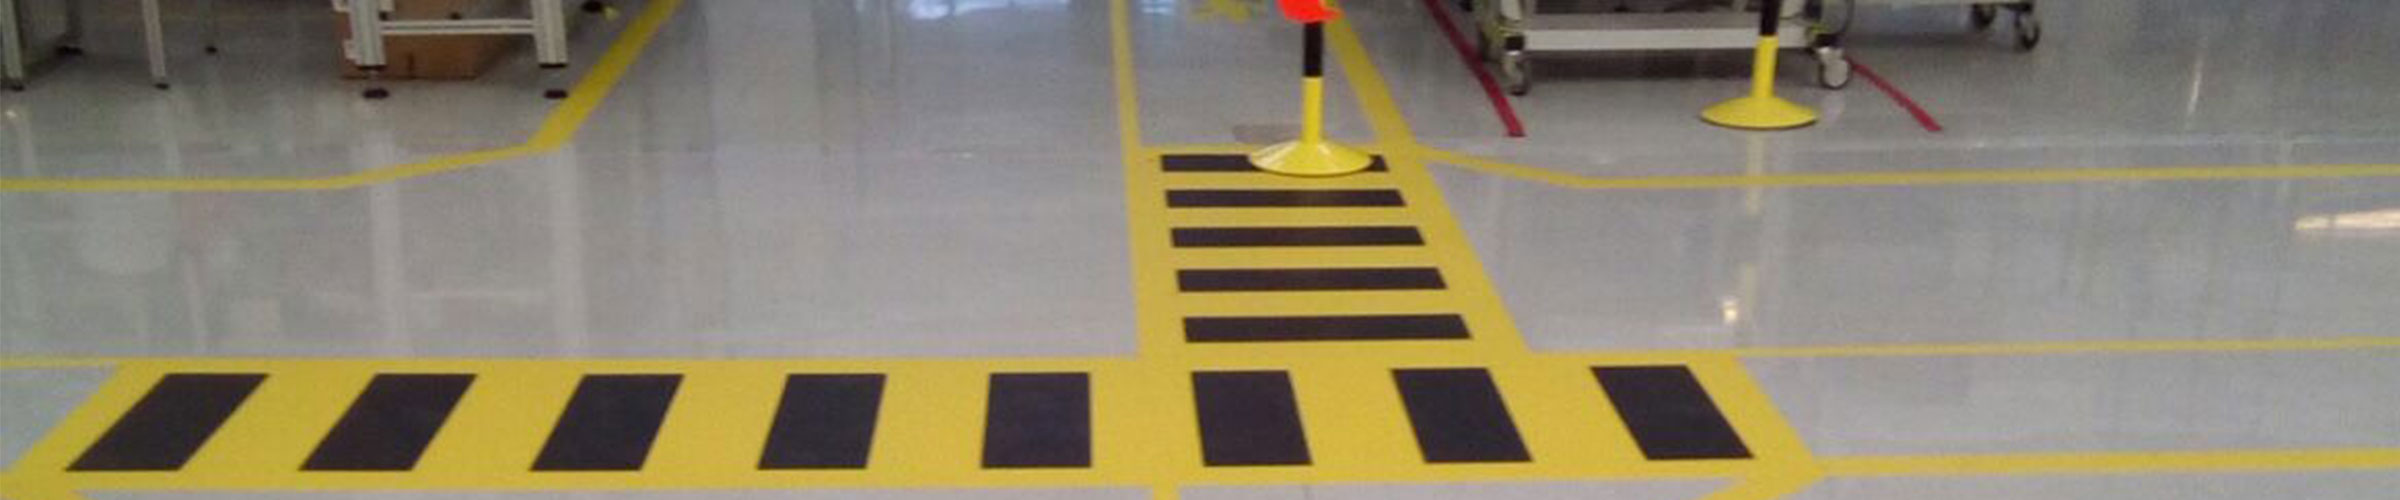 Clarity Floor Marking